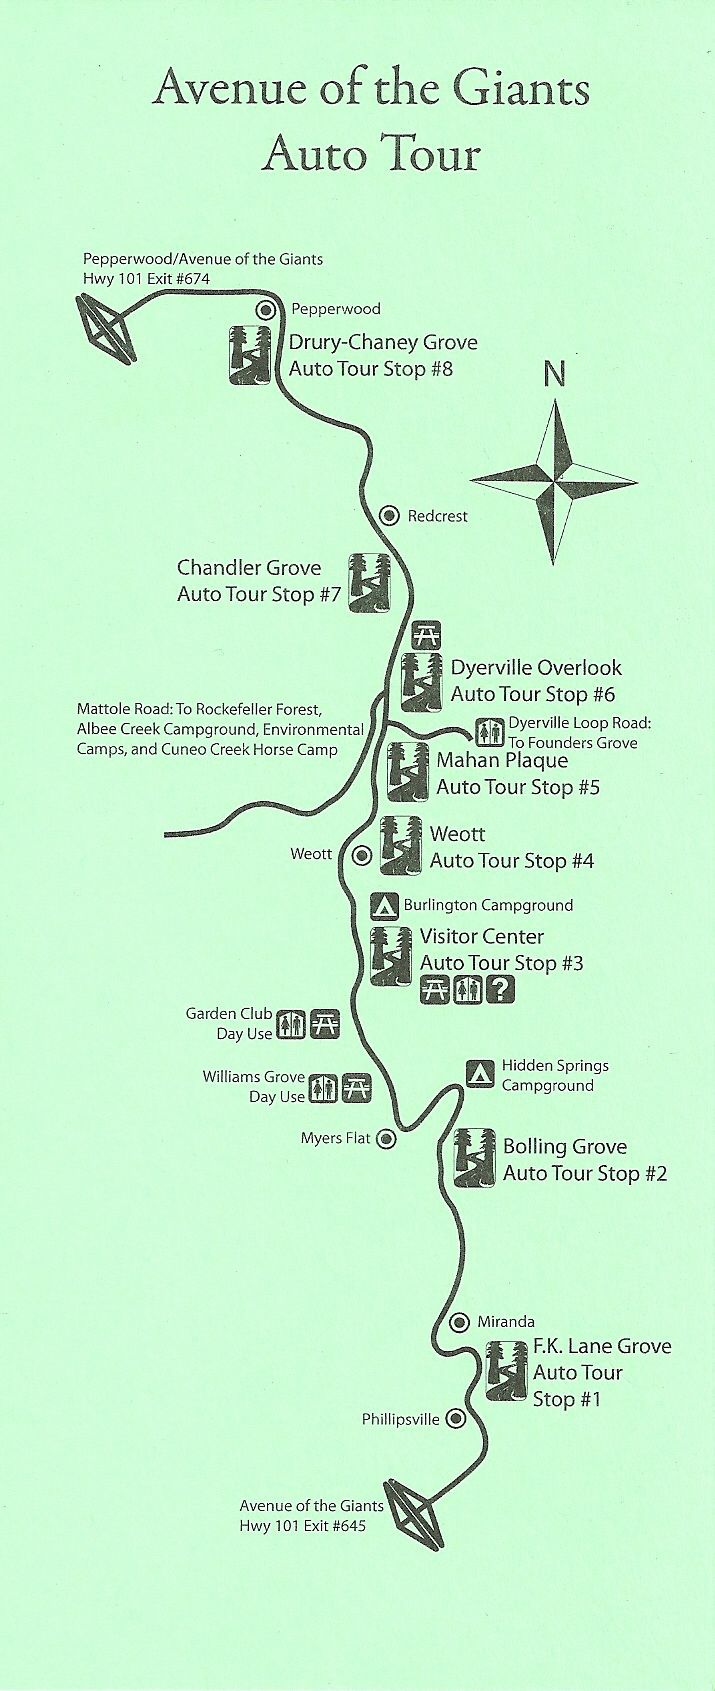 Ave of Giants MAP TUES 9 29 Travel